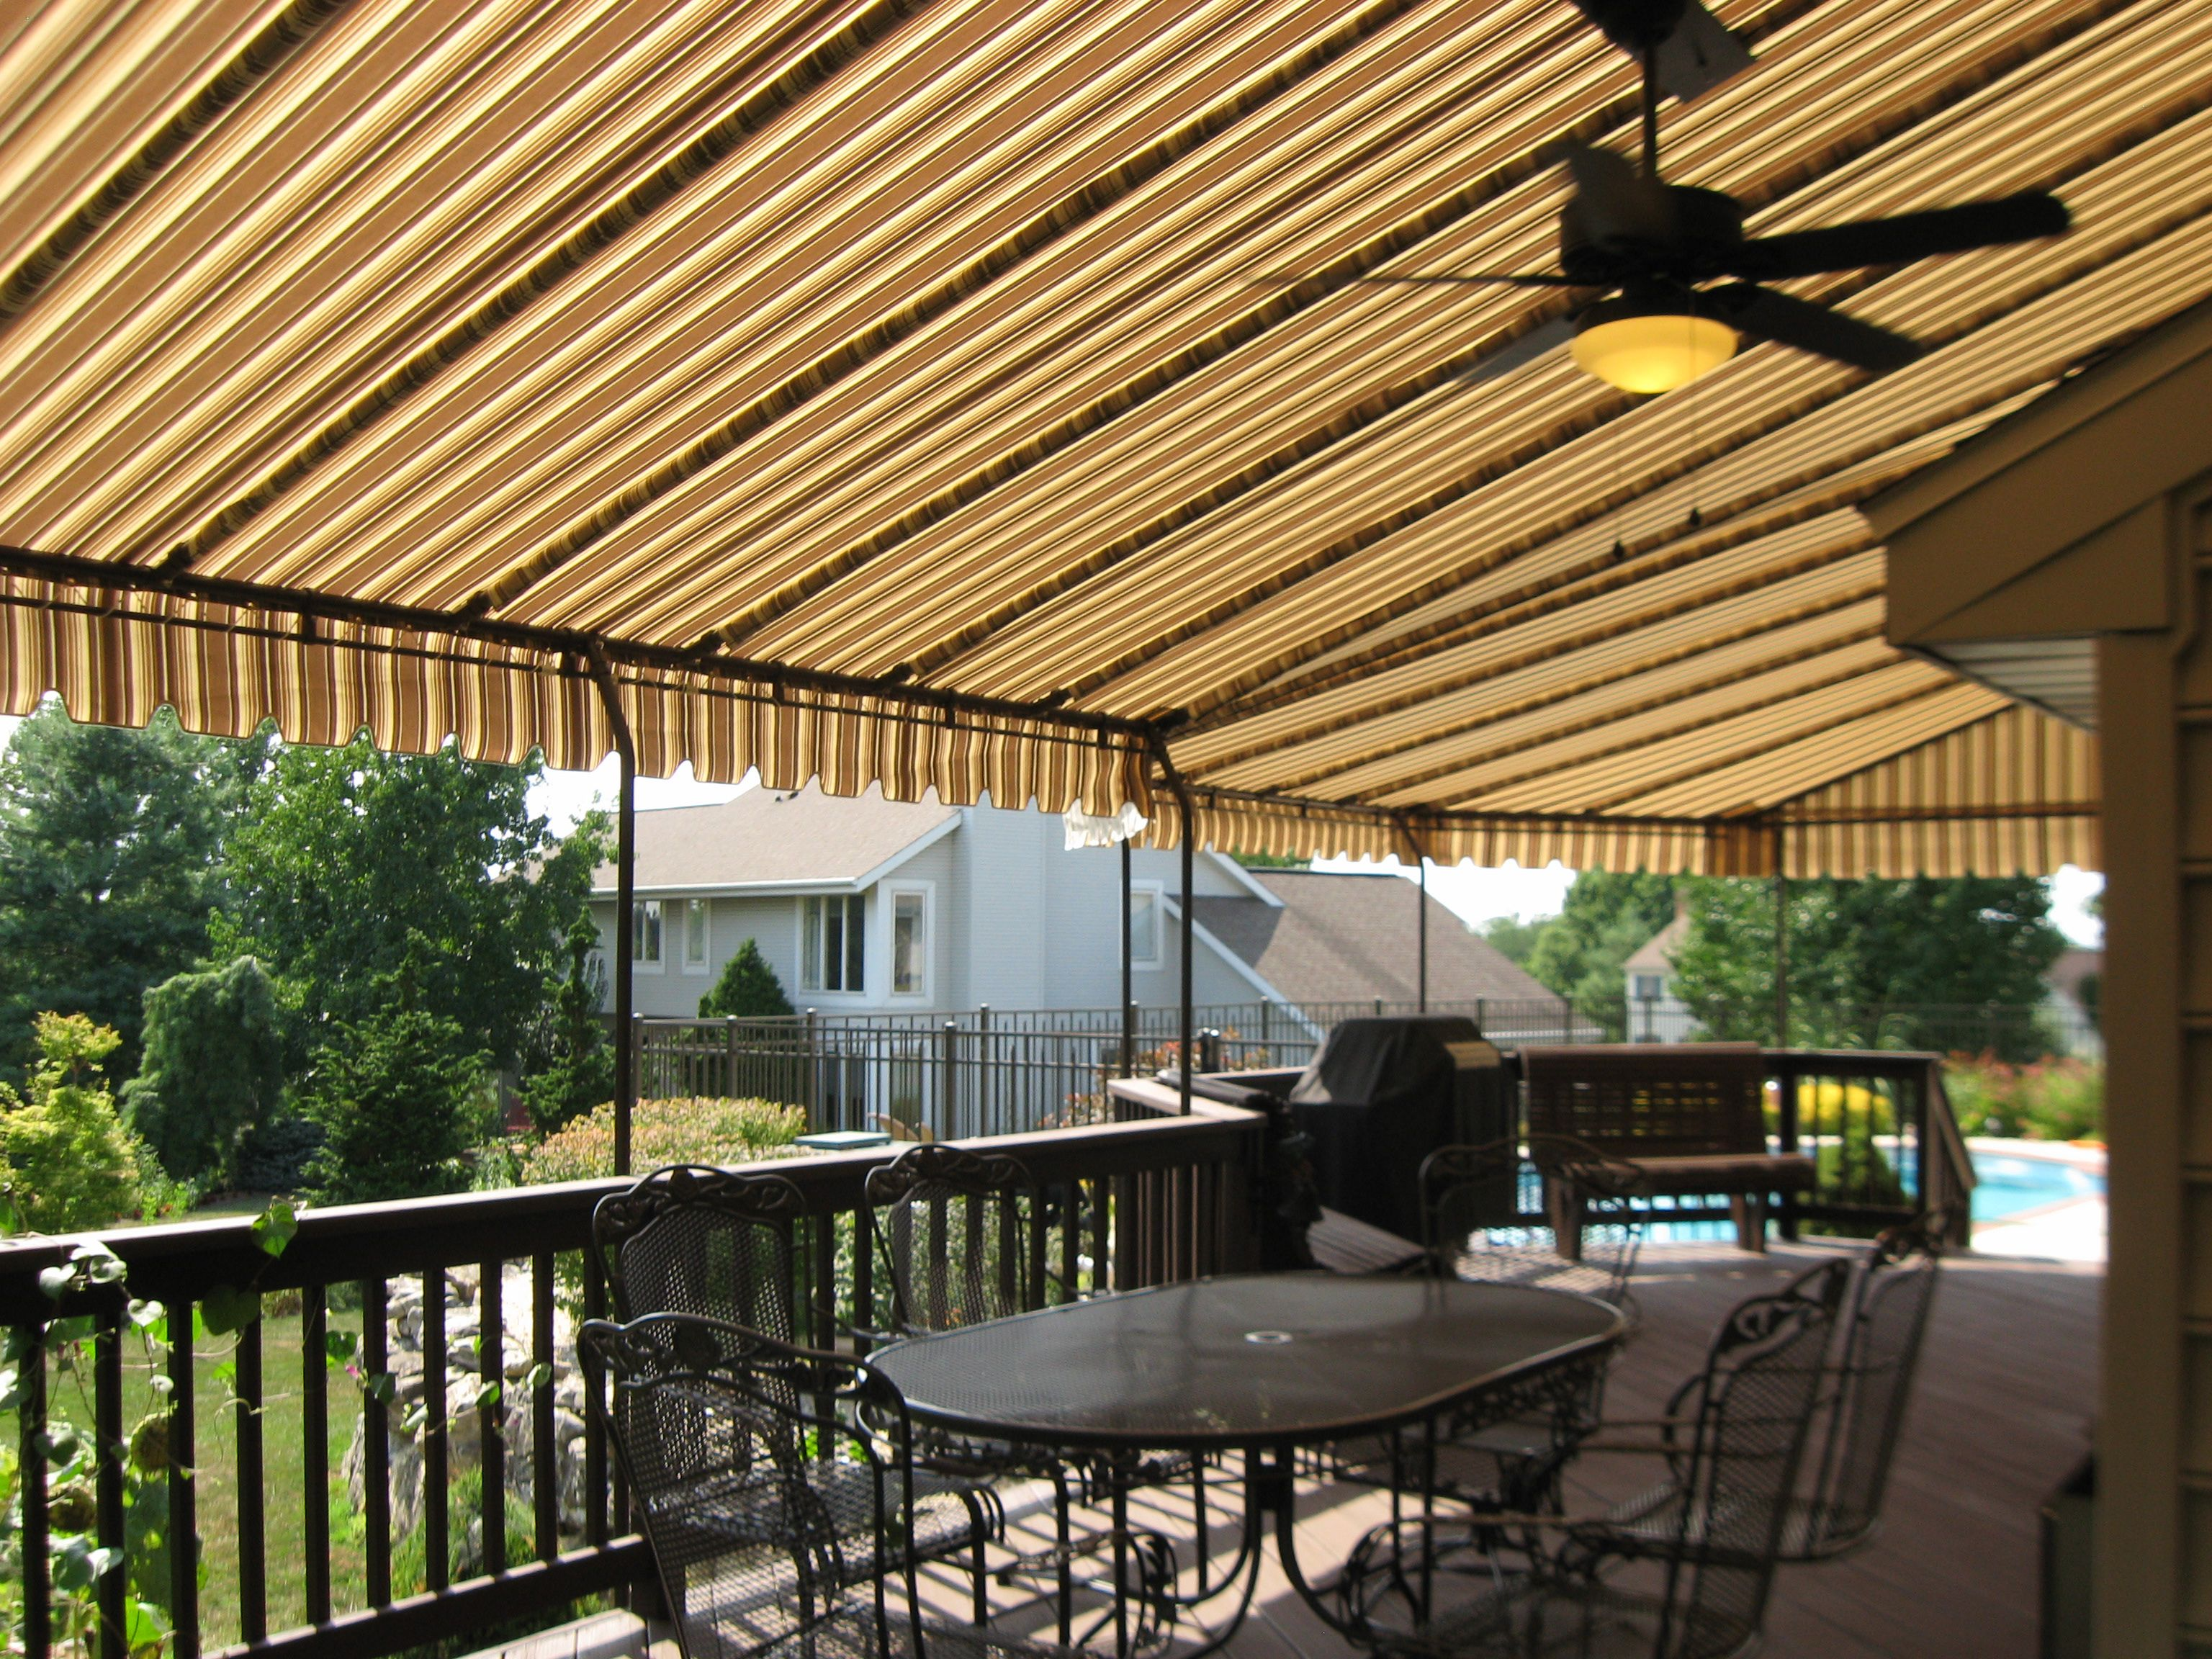 Our Custom Canopies Can Follow The Contour Of Your Deck Providing Maximum Coverage Kreider S Canvas Service 717 656 7387 La Custom Canopy Canopy Deck Canopy